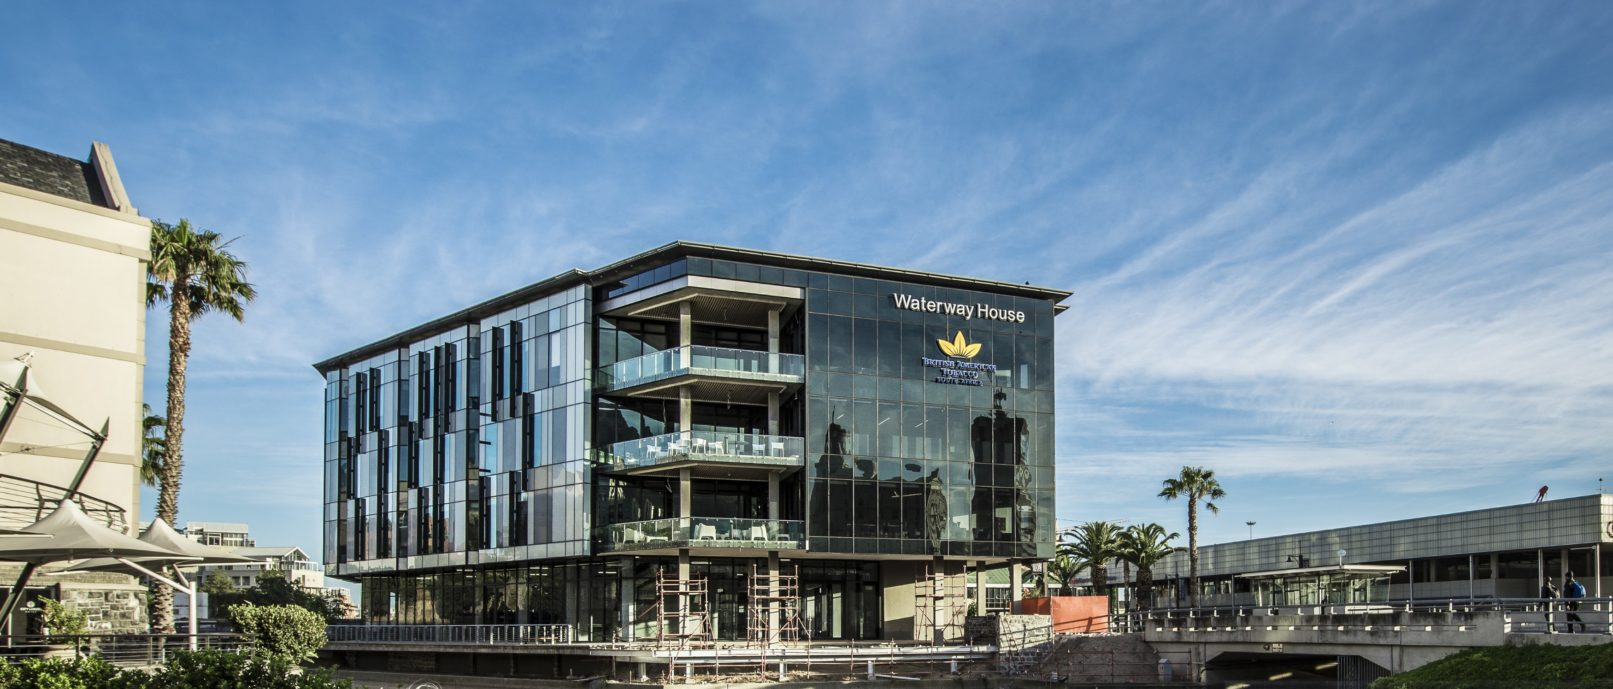 BAT to occupy Waterway House at V&A Waterfront